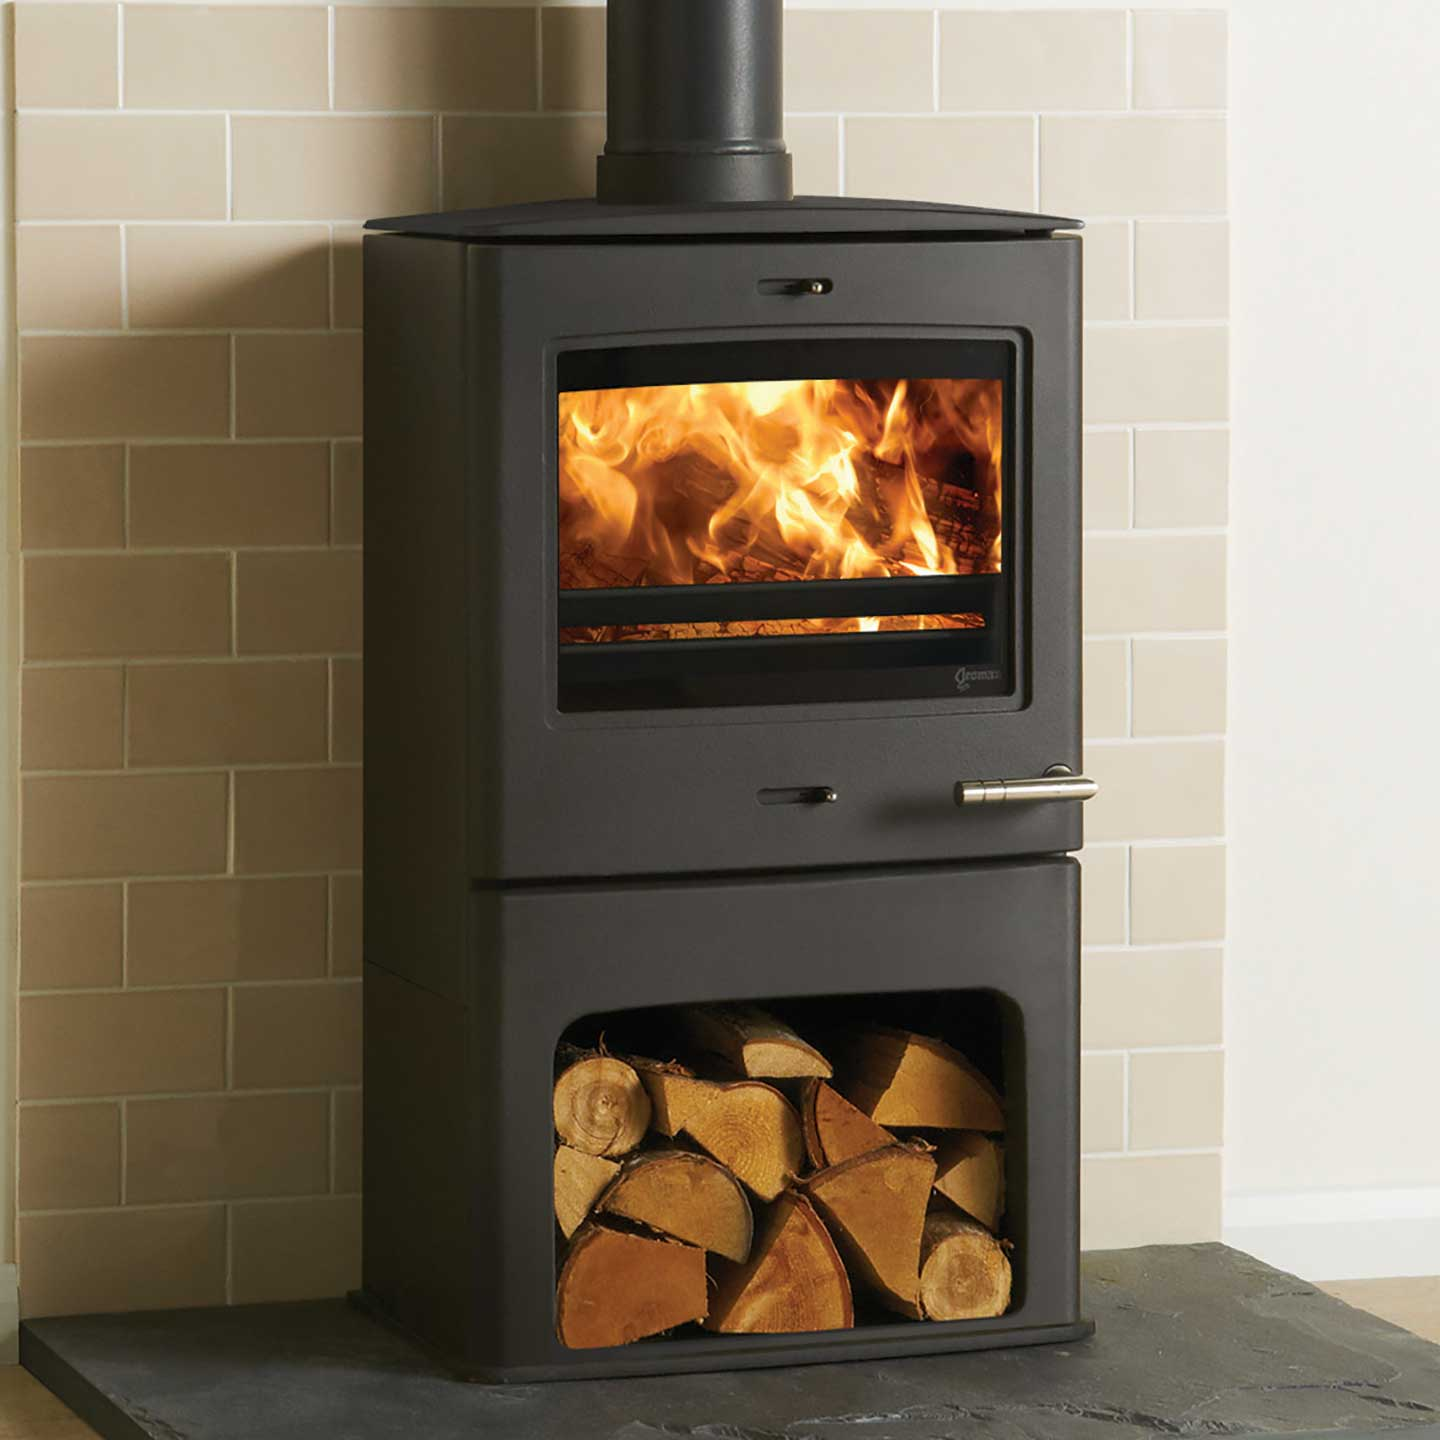 Yeoman Cl5 Midline Multi Fuel Stove The Stove Site